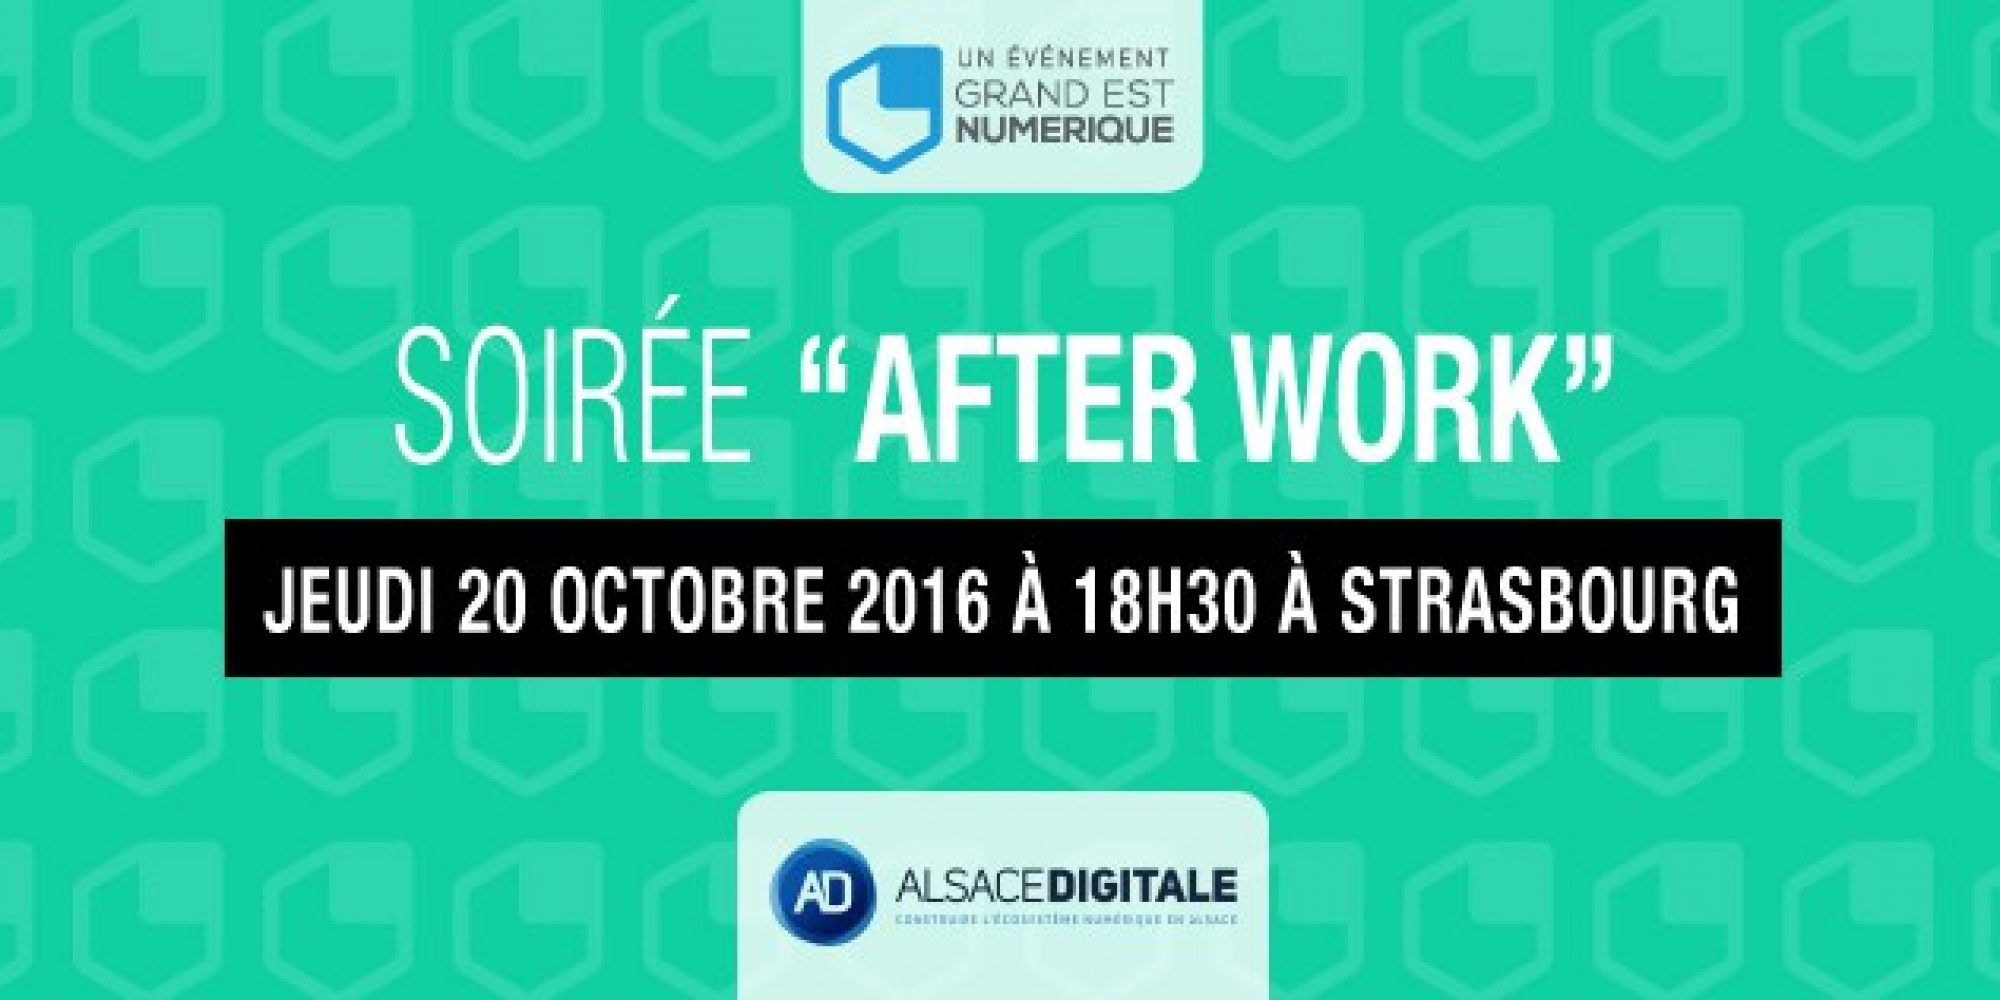 After Work Grand Est Numérique au Shadok